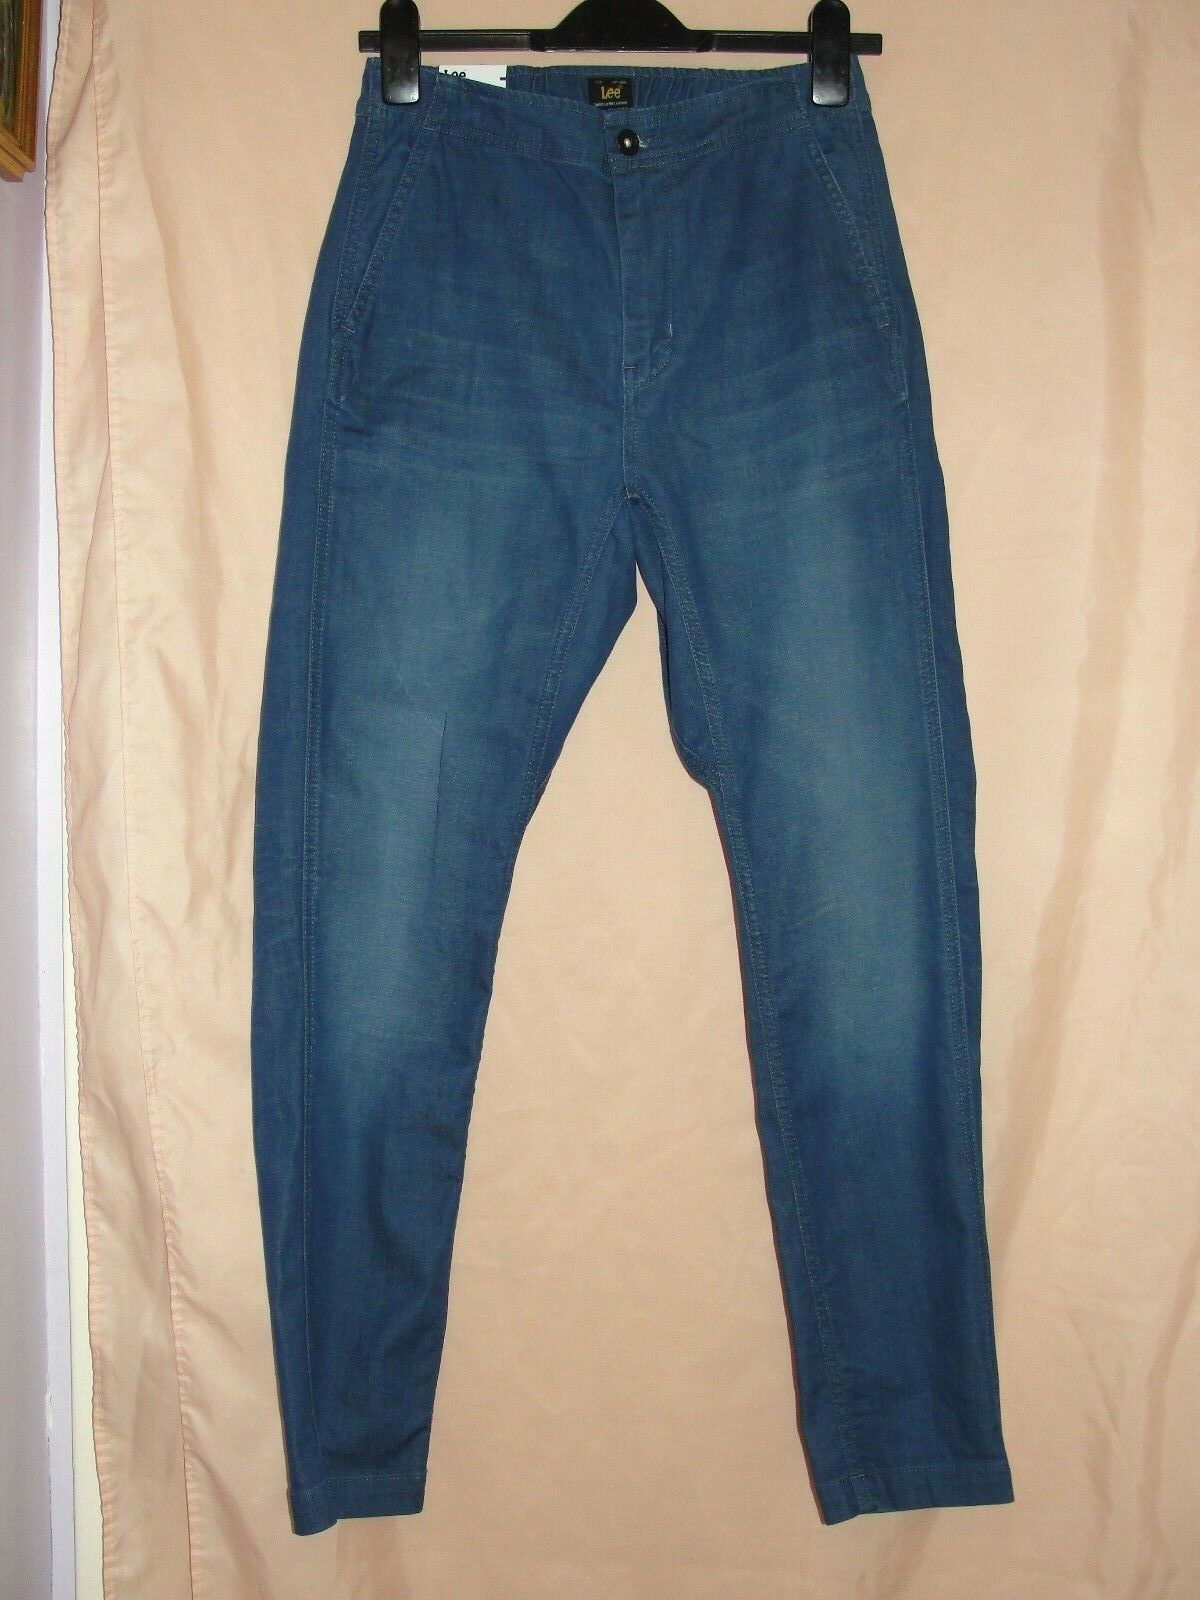 LEE TROUSERS   JEANS - SIZE w-XS L-00  RRP gbp 110